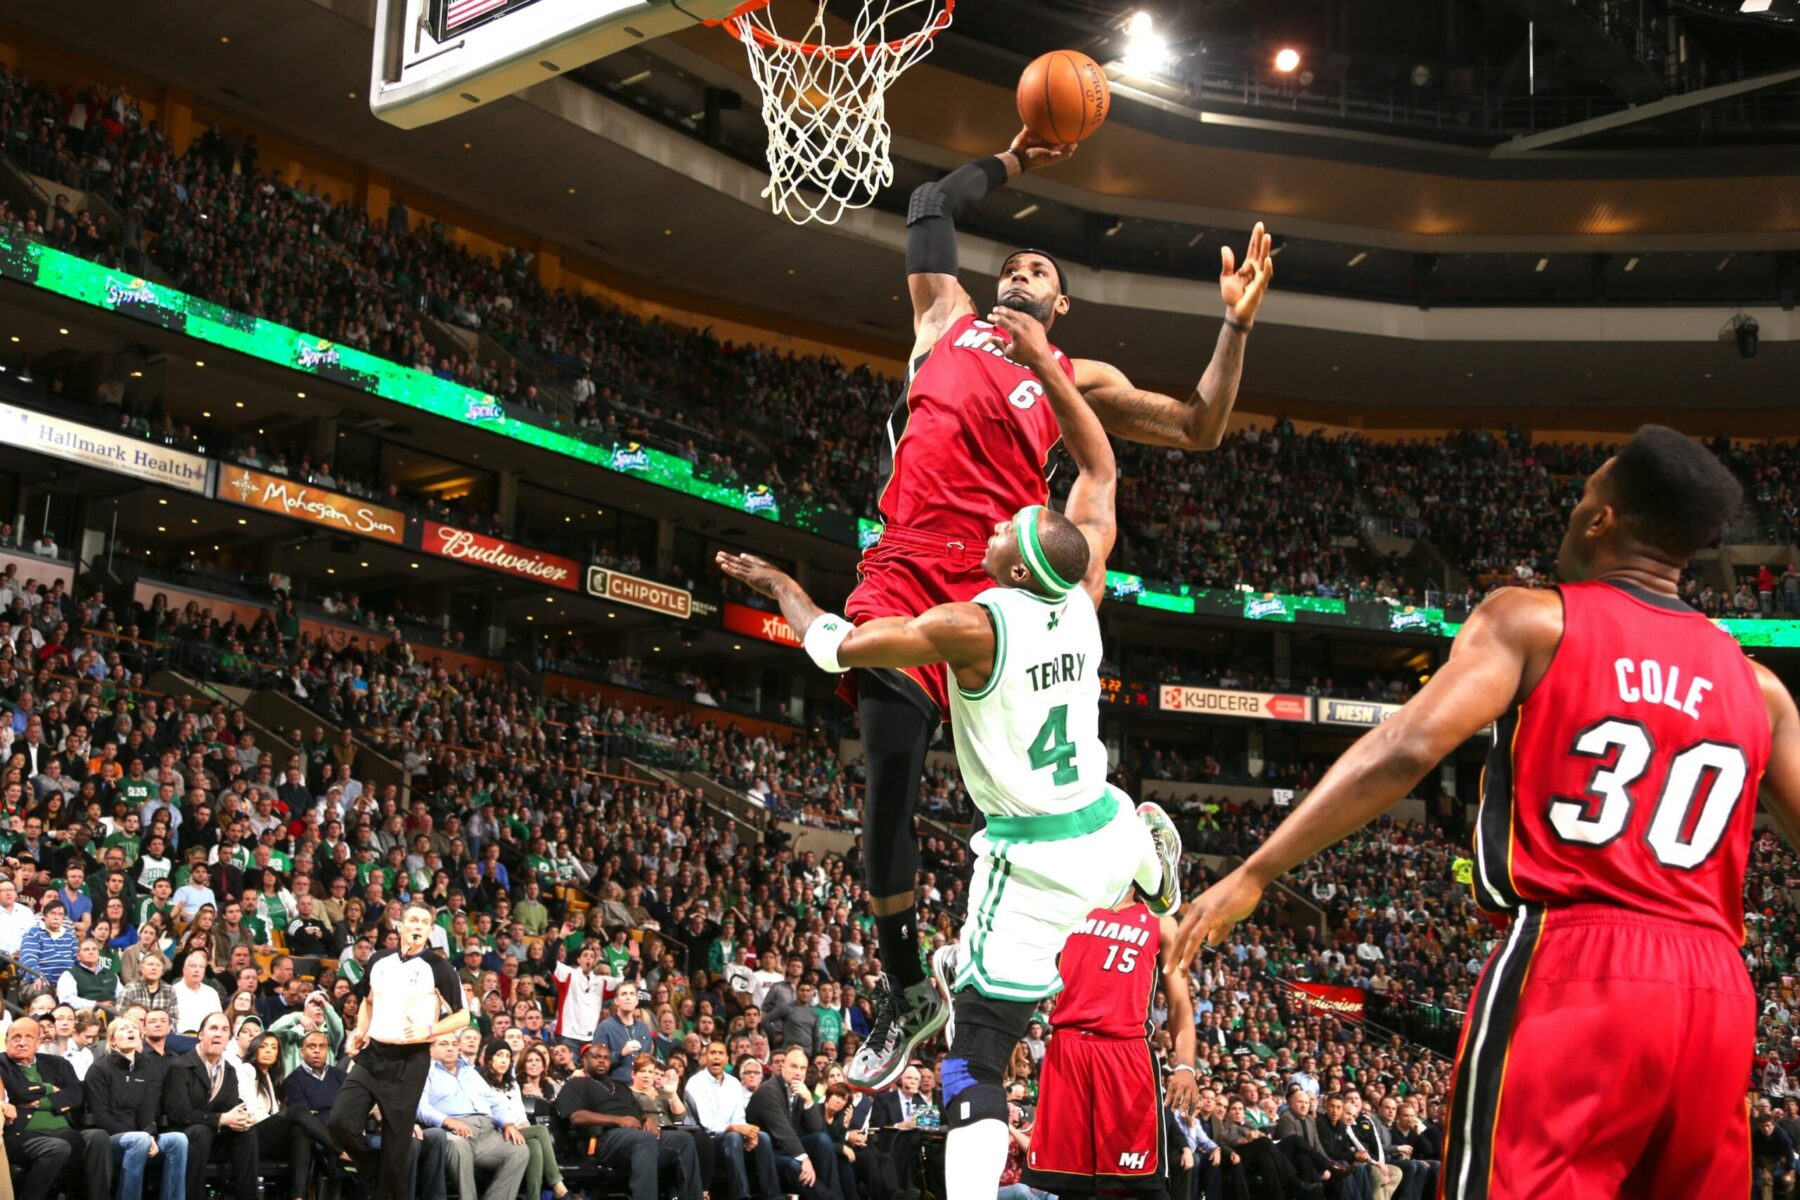 LeBron James and Jason Terry